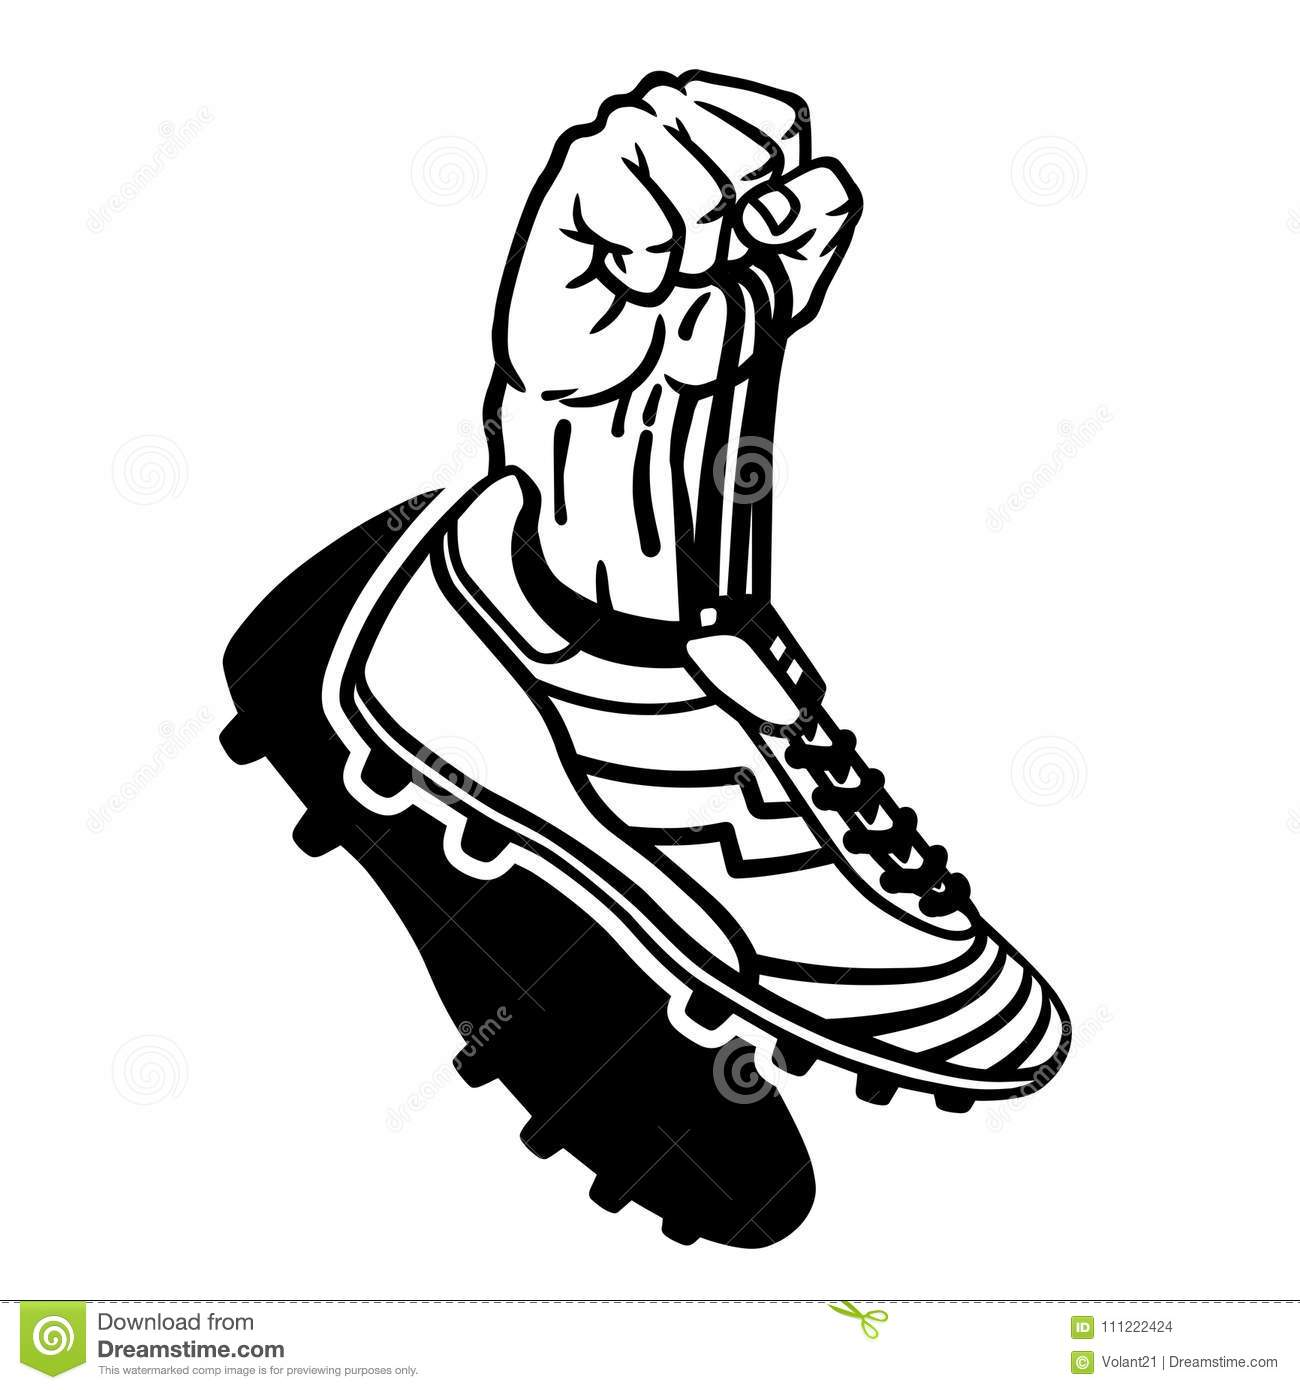 Raised Hand Holding Football Boots Stock Vector